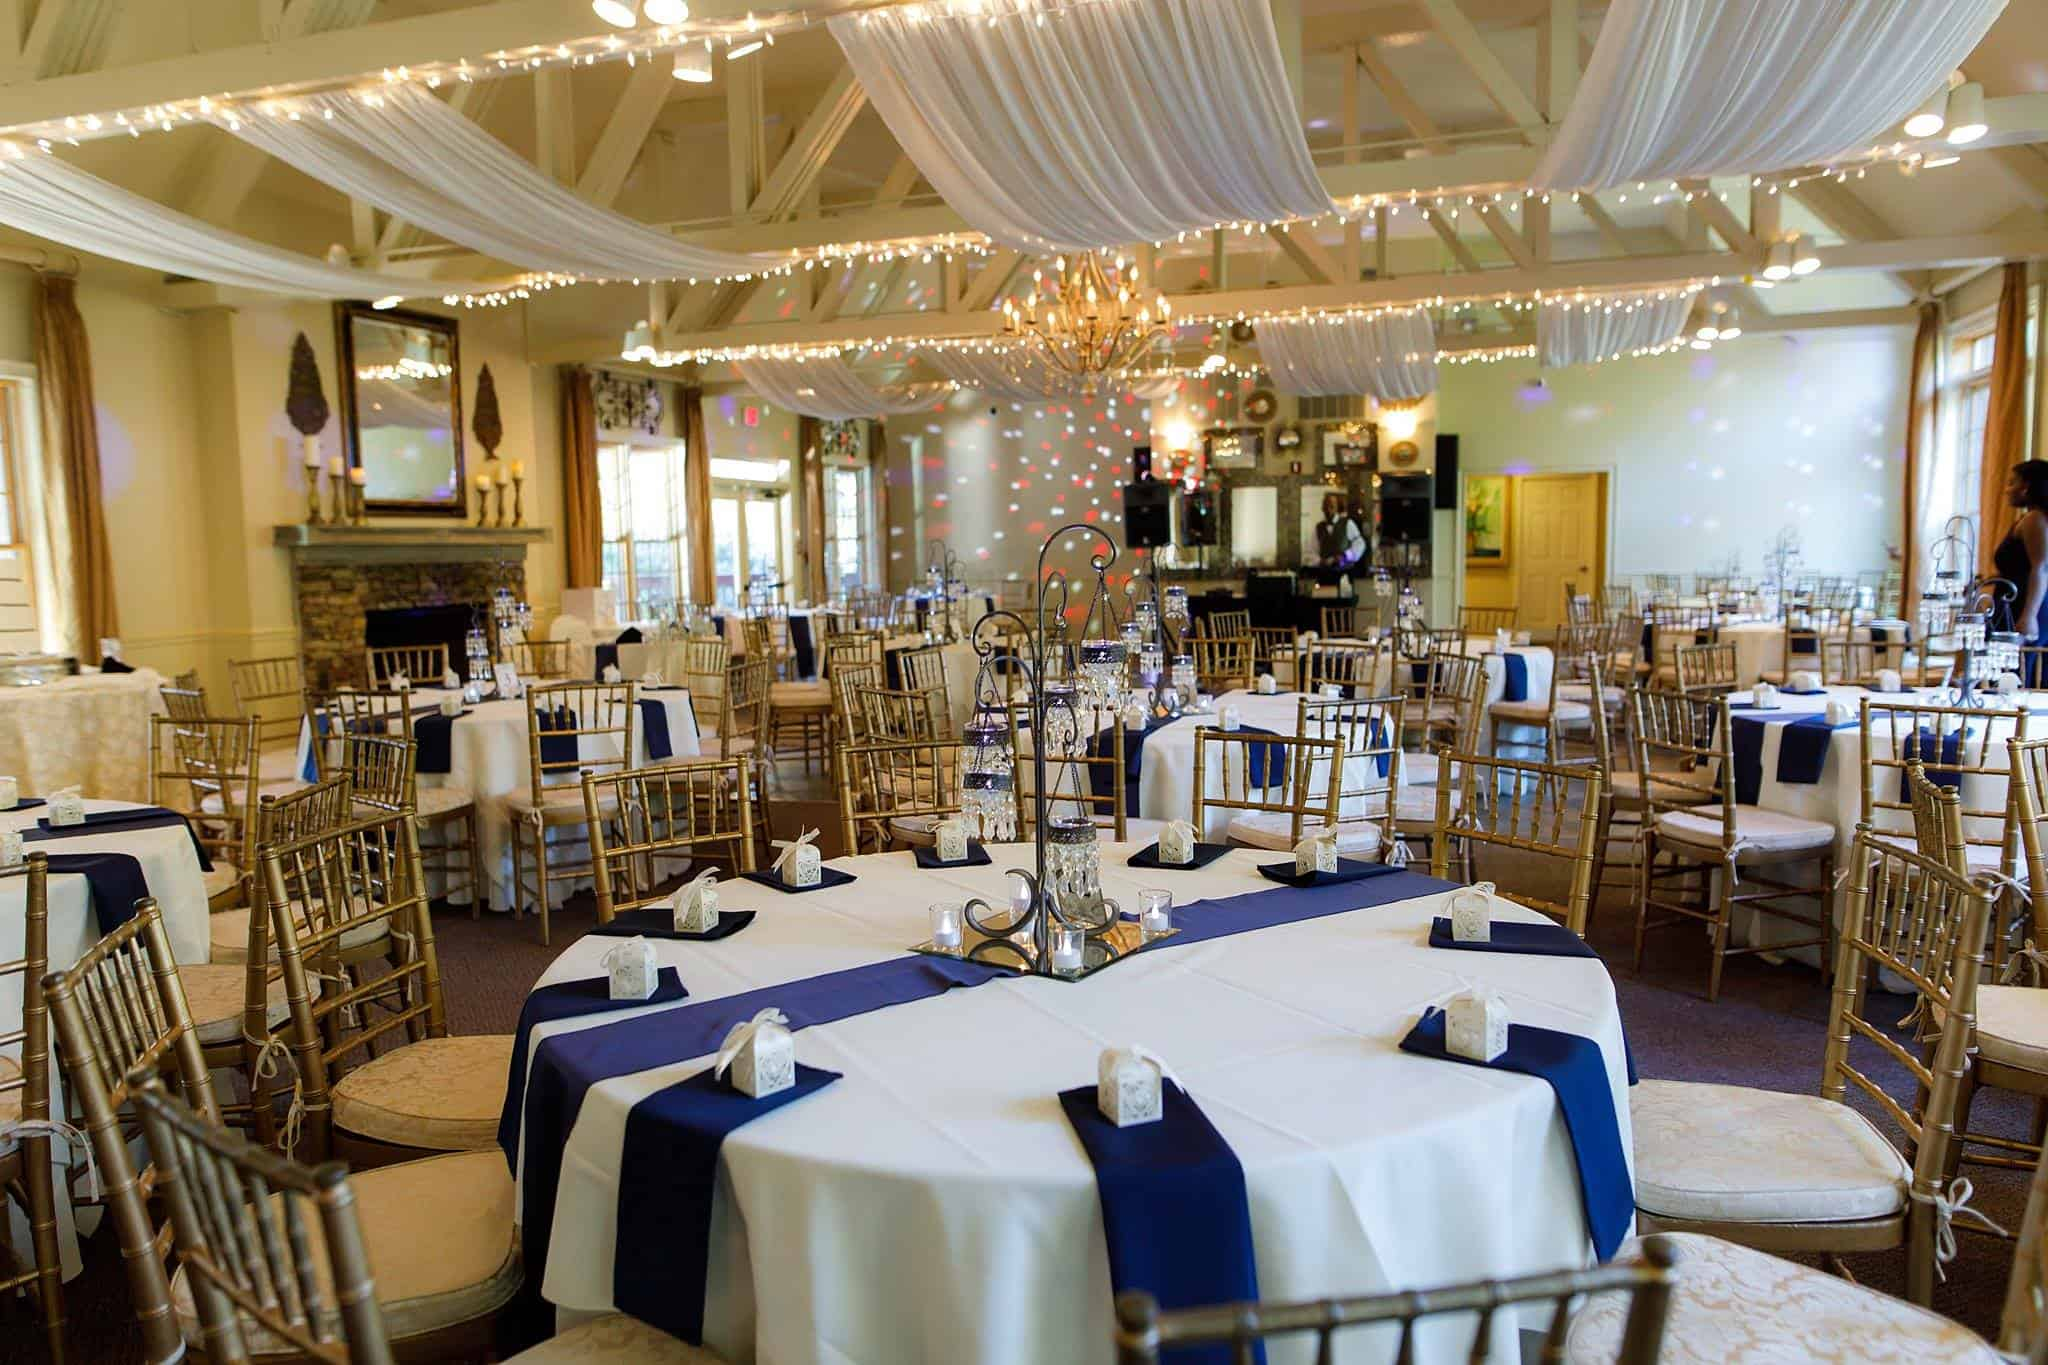 Reception hall with ivory tablecloths and navy blue folded napkins